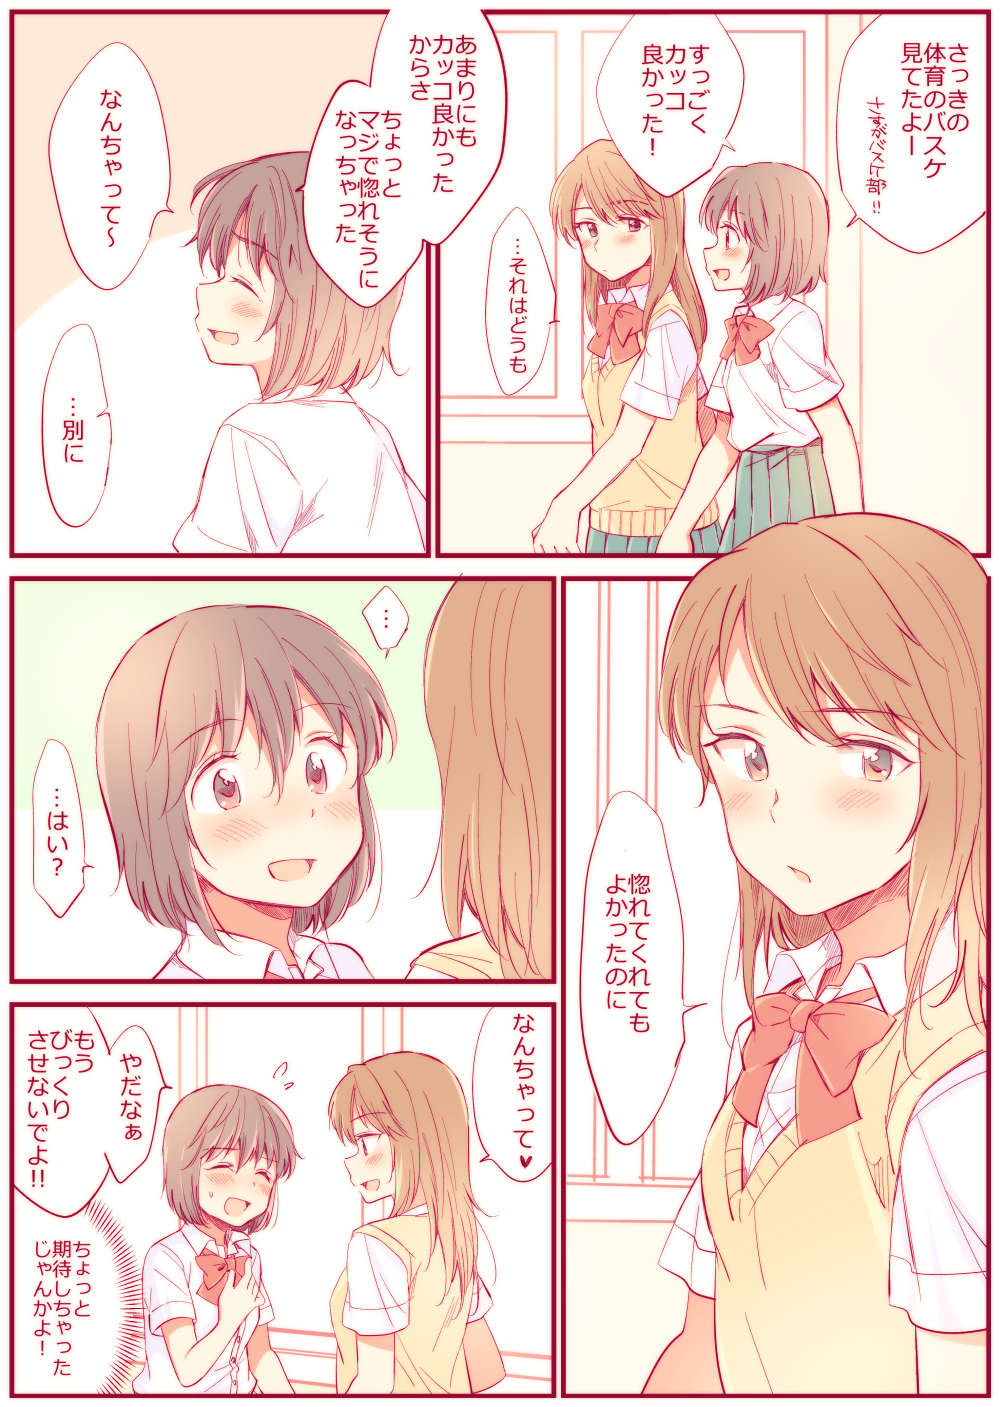 ... 2girls :d ^_^ bangs blush brown_eyes brown_hair cardigan_vest closed_eyes comic commentary_request eyebrows_visible_through_hair flying_sweatdrops green_skirt hachiko_(hati12) hair_between_eyes heart height_difference highres long_hair looking_at_another multiple_girls open_mouth original profile ribbon school_uniform short_hair skirt smile spoken_ellipsis spoken_heart sweatdrop sweater translation_request yellow_sweater